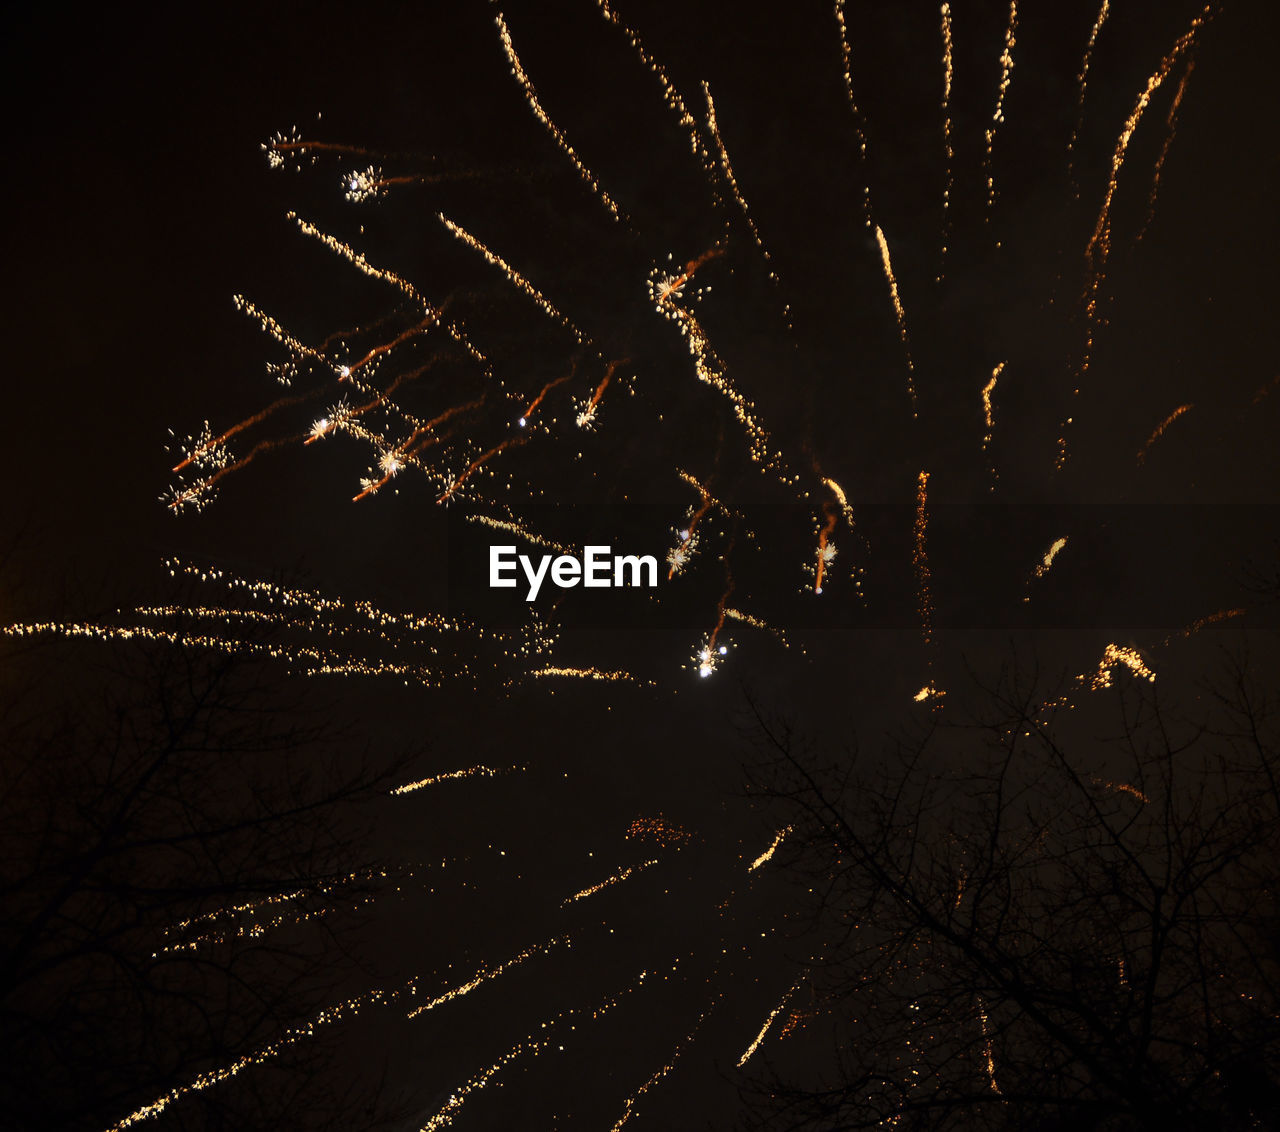 night, illuminated, celebration, event, long exposure, glowing, no people, firework, nature, motion, low angle view, sky, arts culture and entertainment, firework display, outdoors, exploding, tree, light, bare tree, firework - man made object